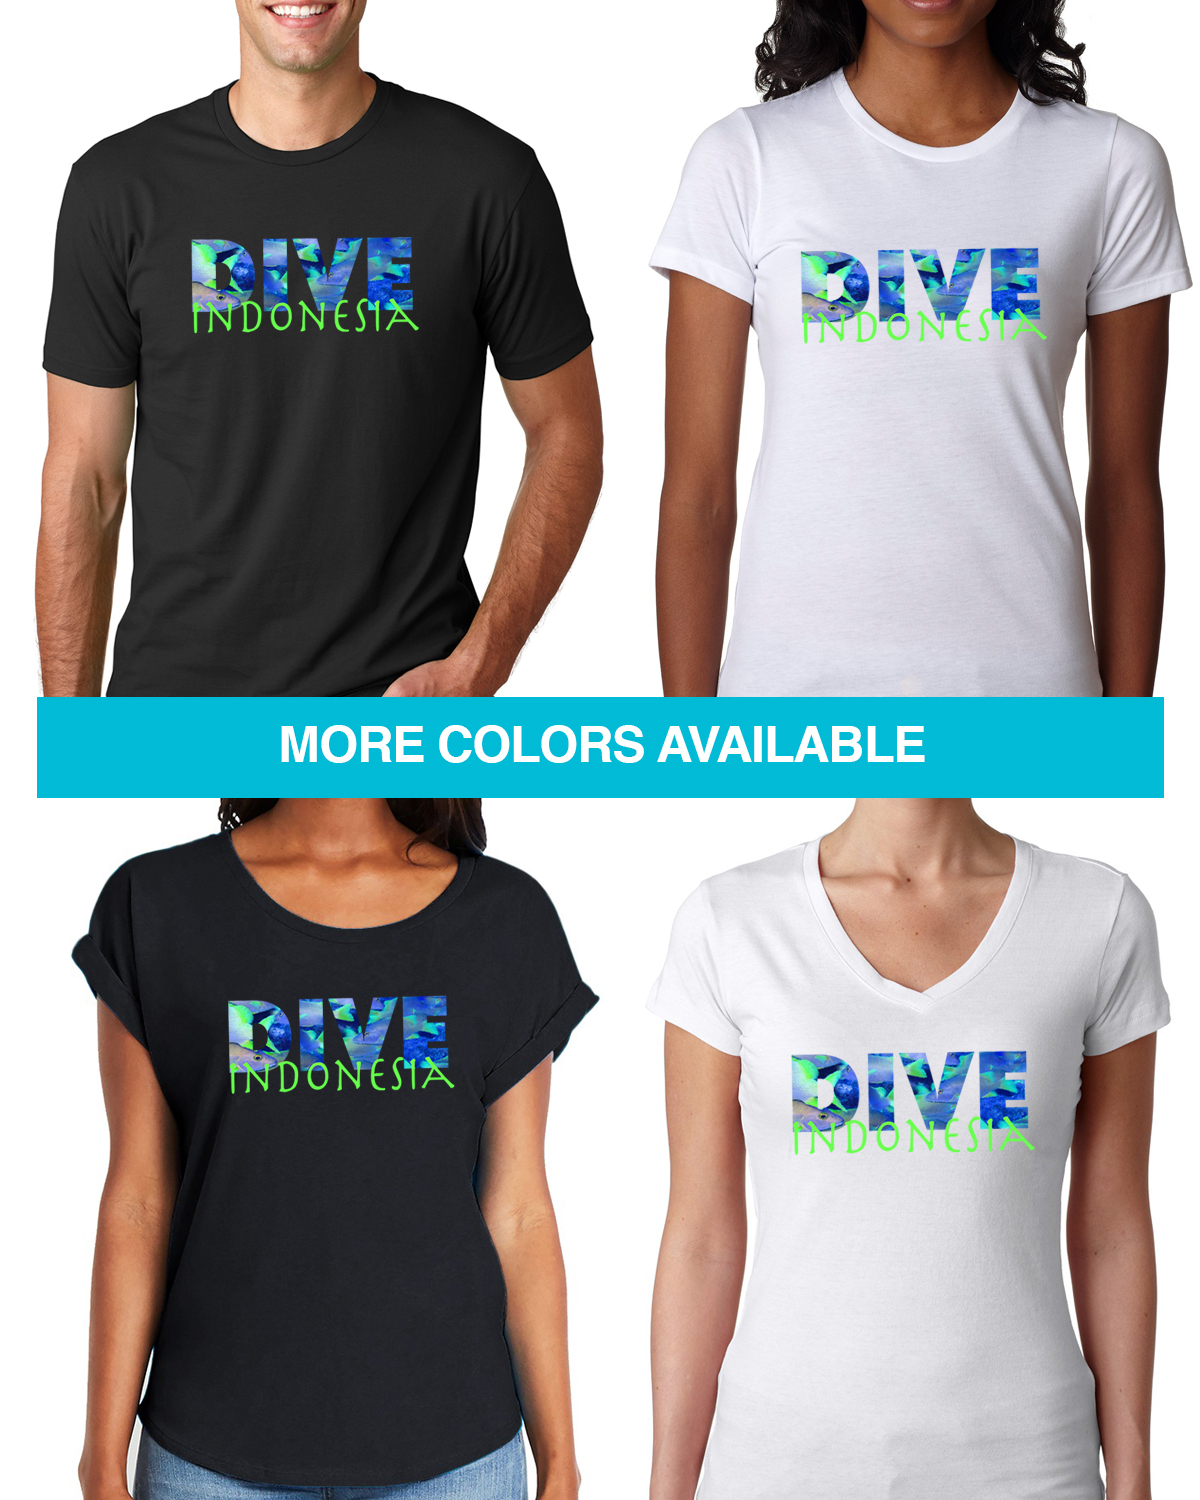 Short sleeve Dive Indonesia t-shirt for men and women